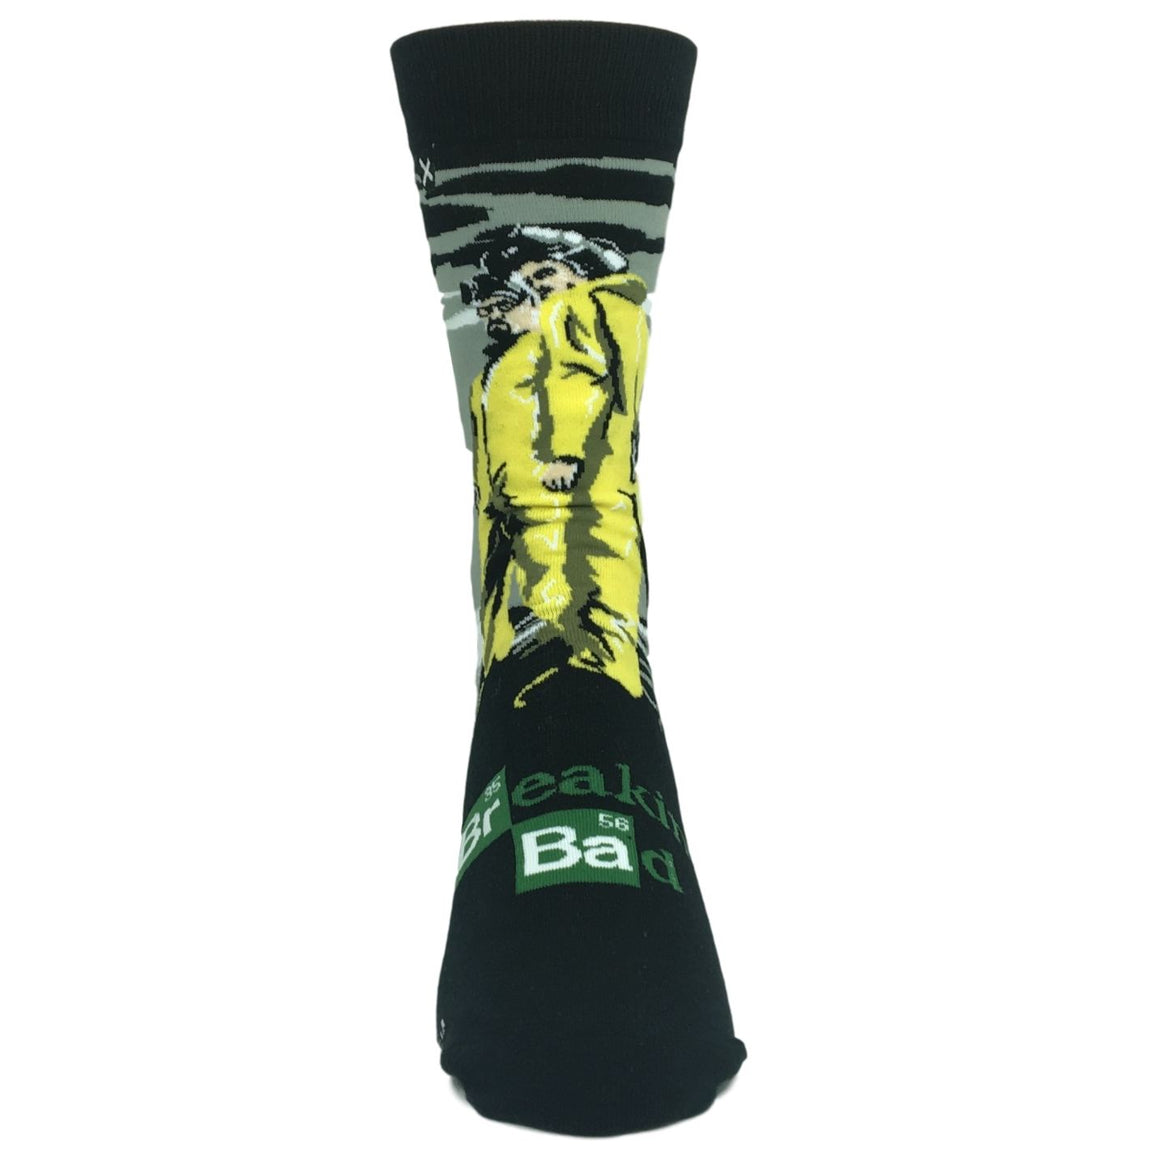 Breaking Bad Partners in Crime Socks by Odd Sox - The Sock Spot